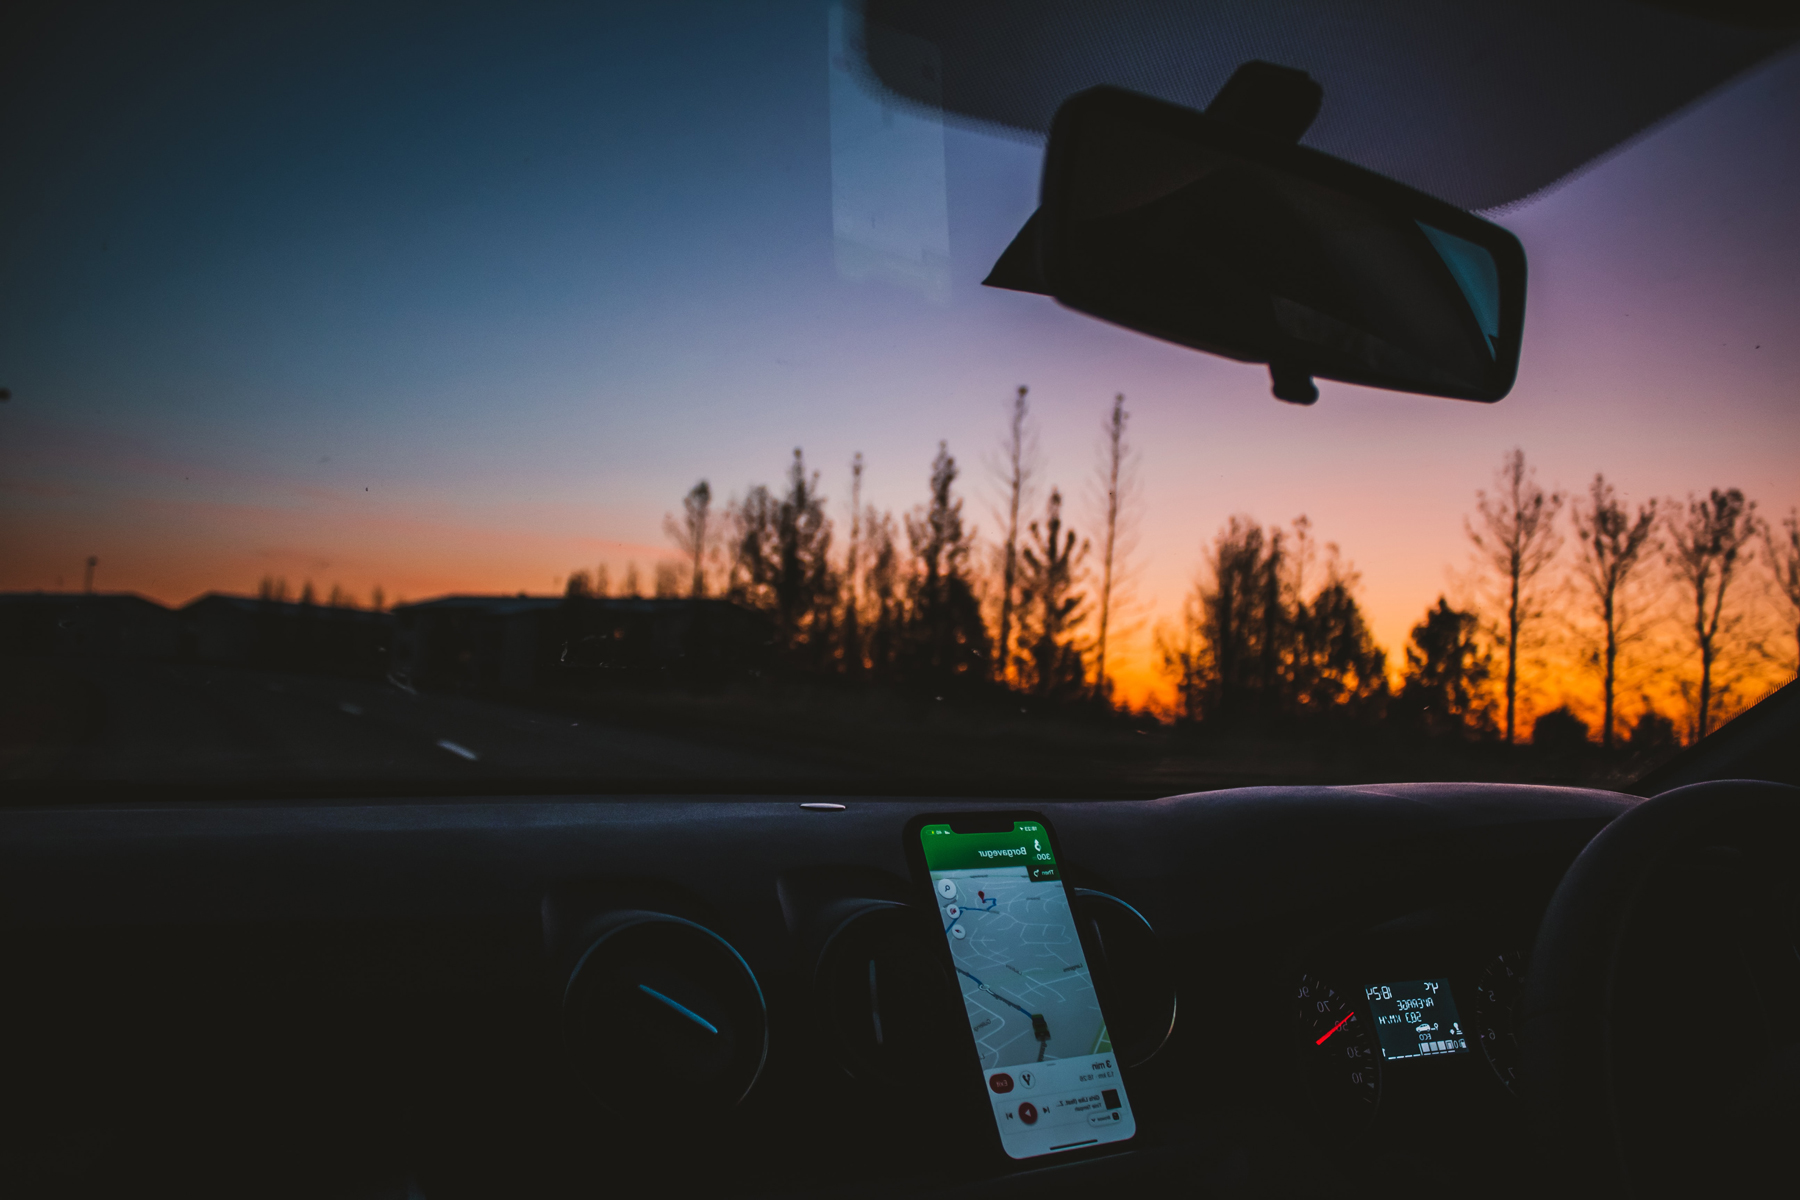 The dashboard of a minibus driving at dusk with a phone for navigation